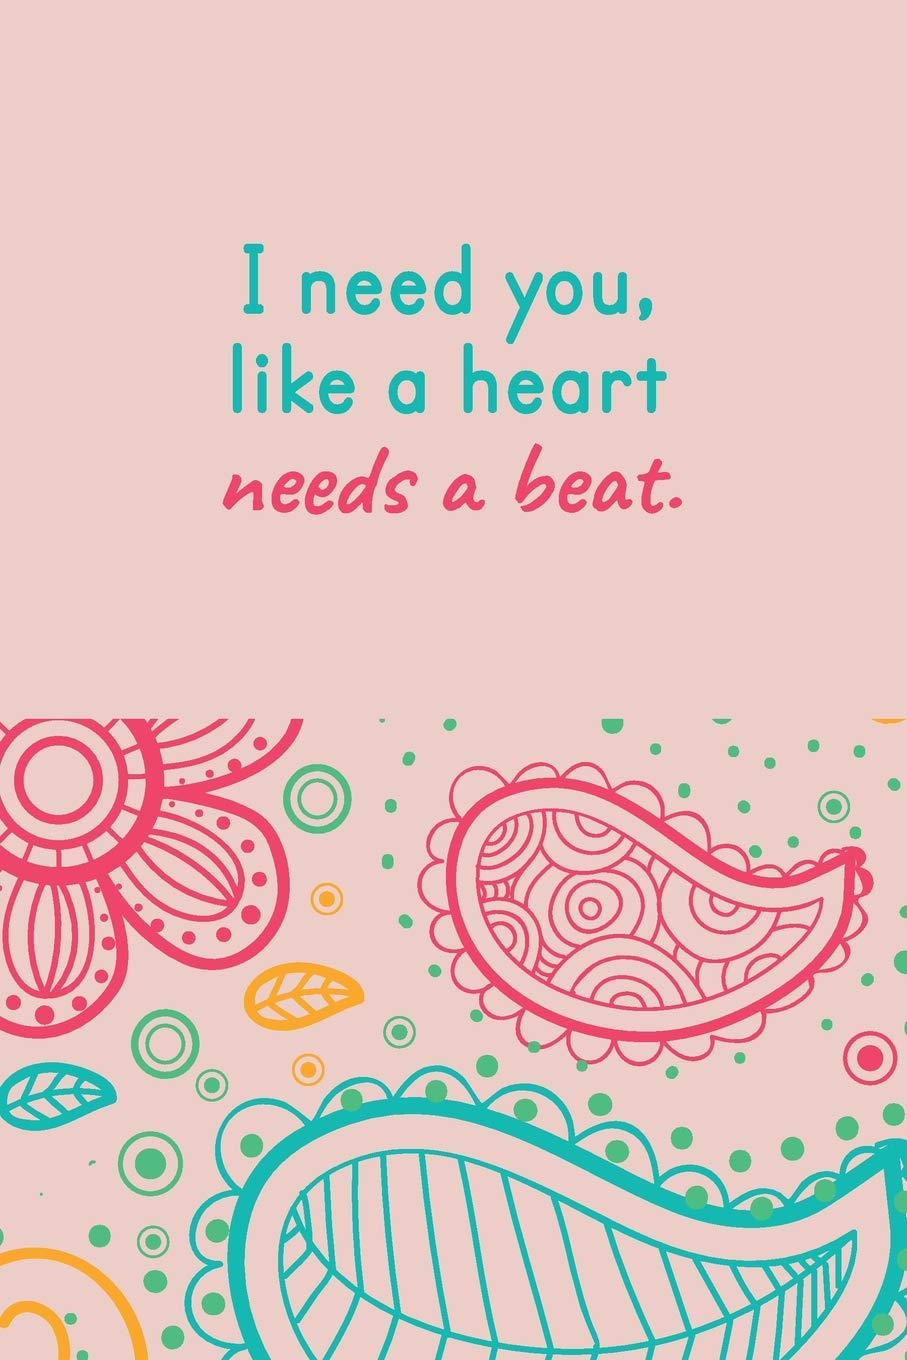 I Need You Like A Heart Needs A Beat: Feeling Love Quotes